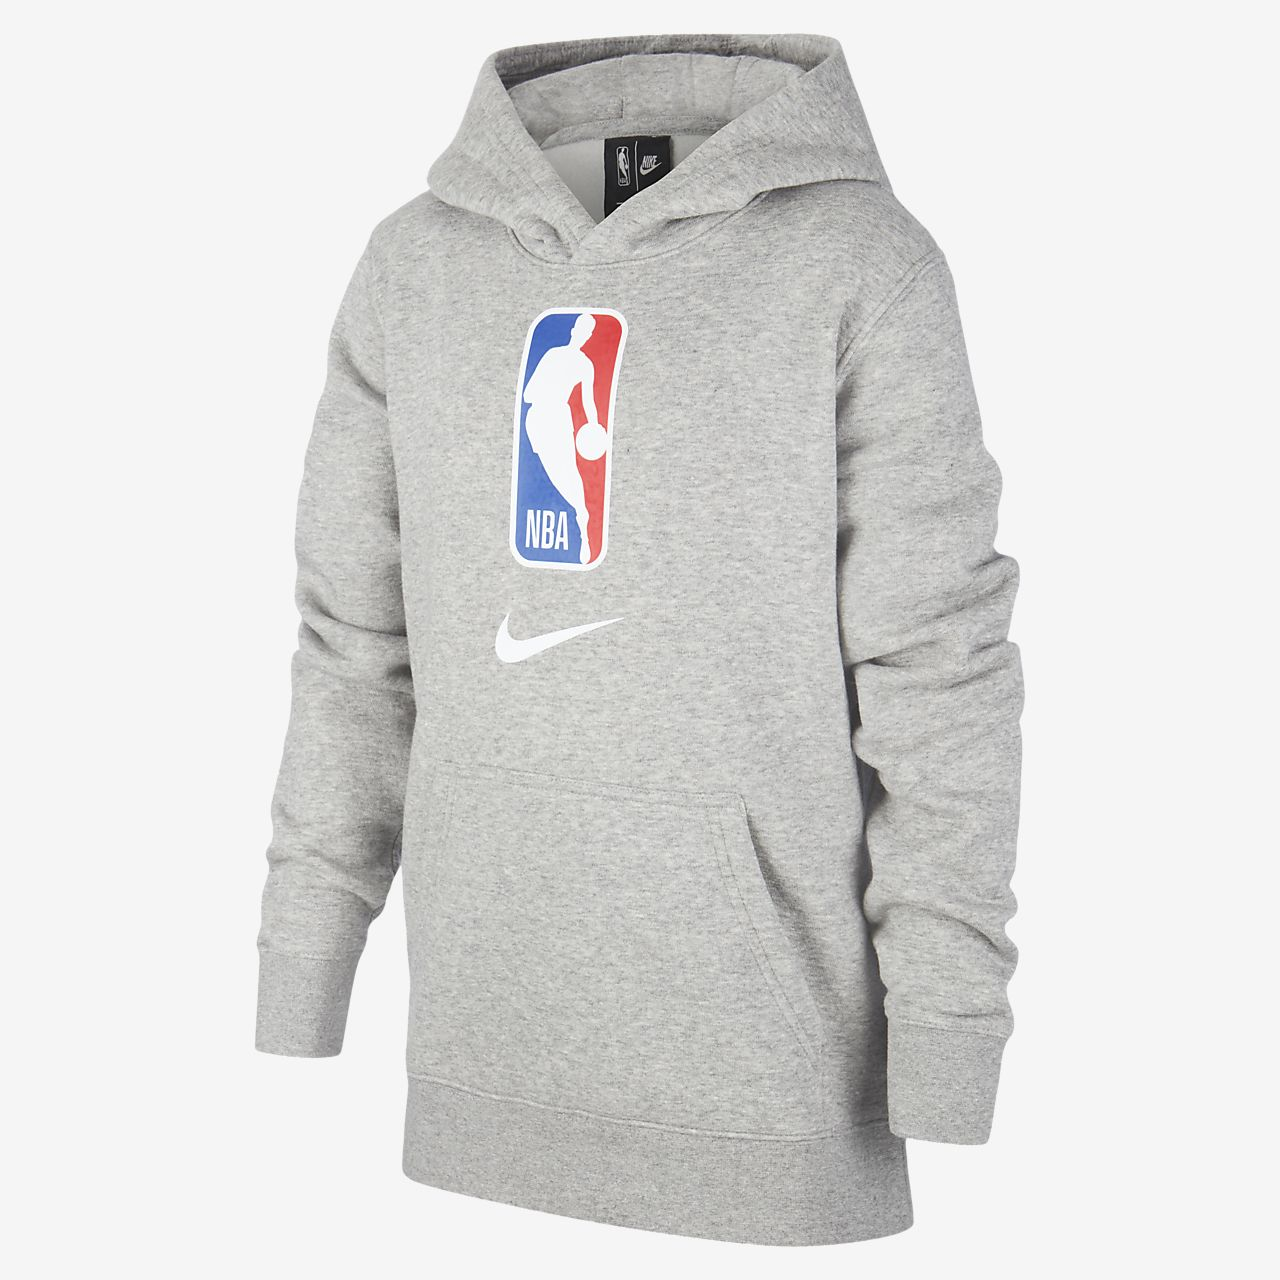 Sweat à capuche Nike NBA Team 31 pour Enfant plus âgé